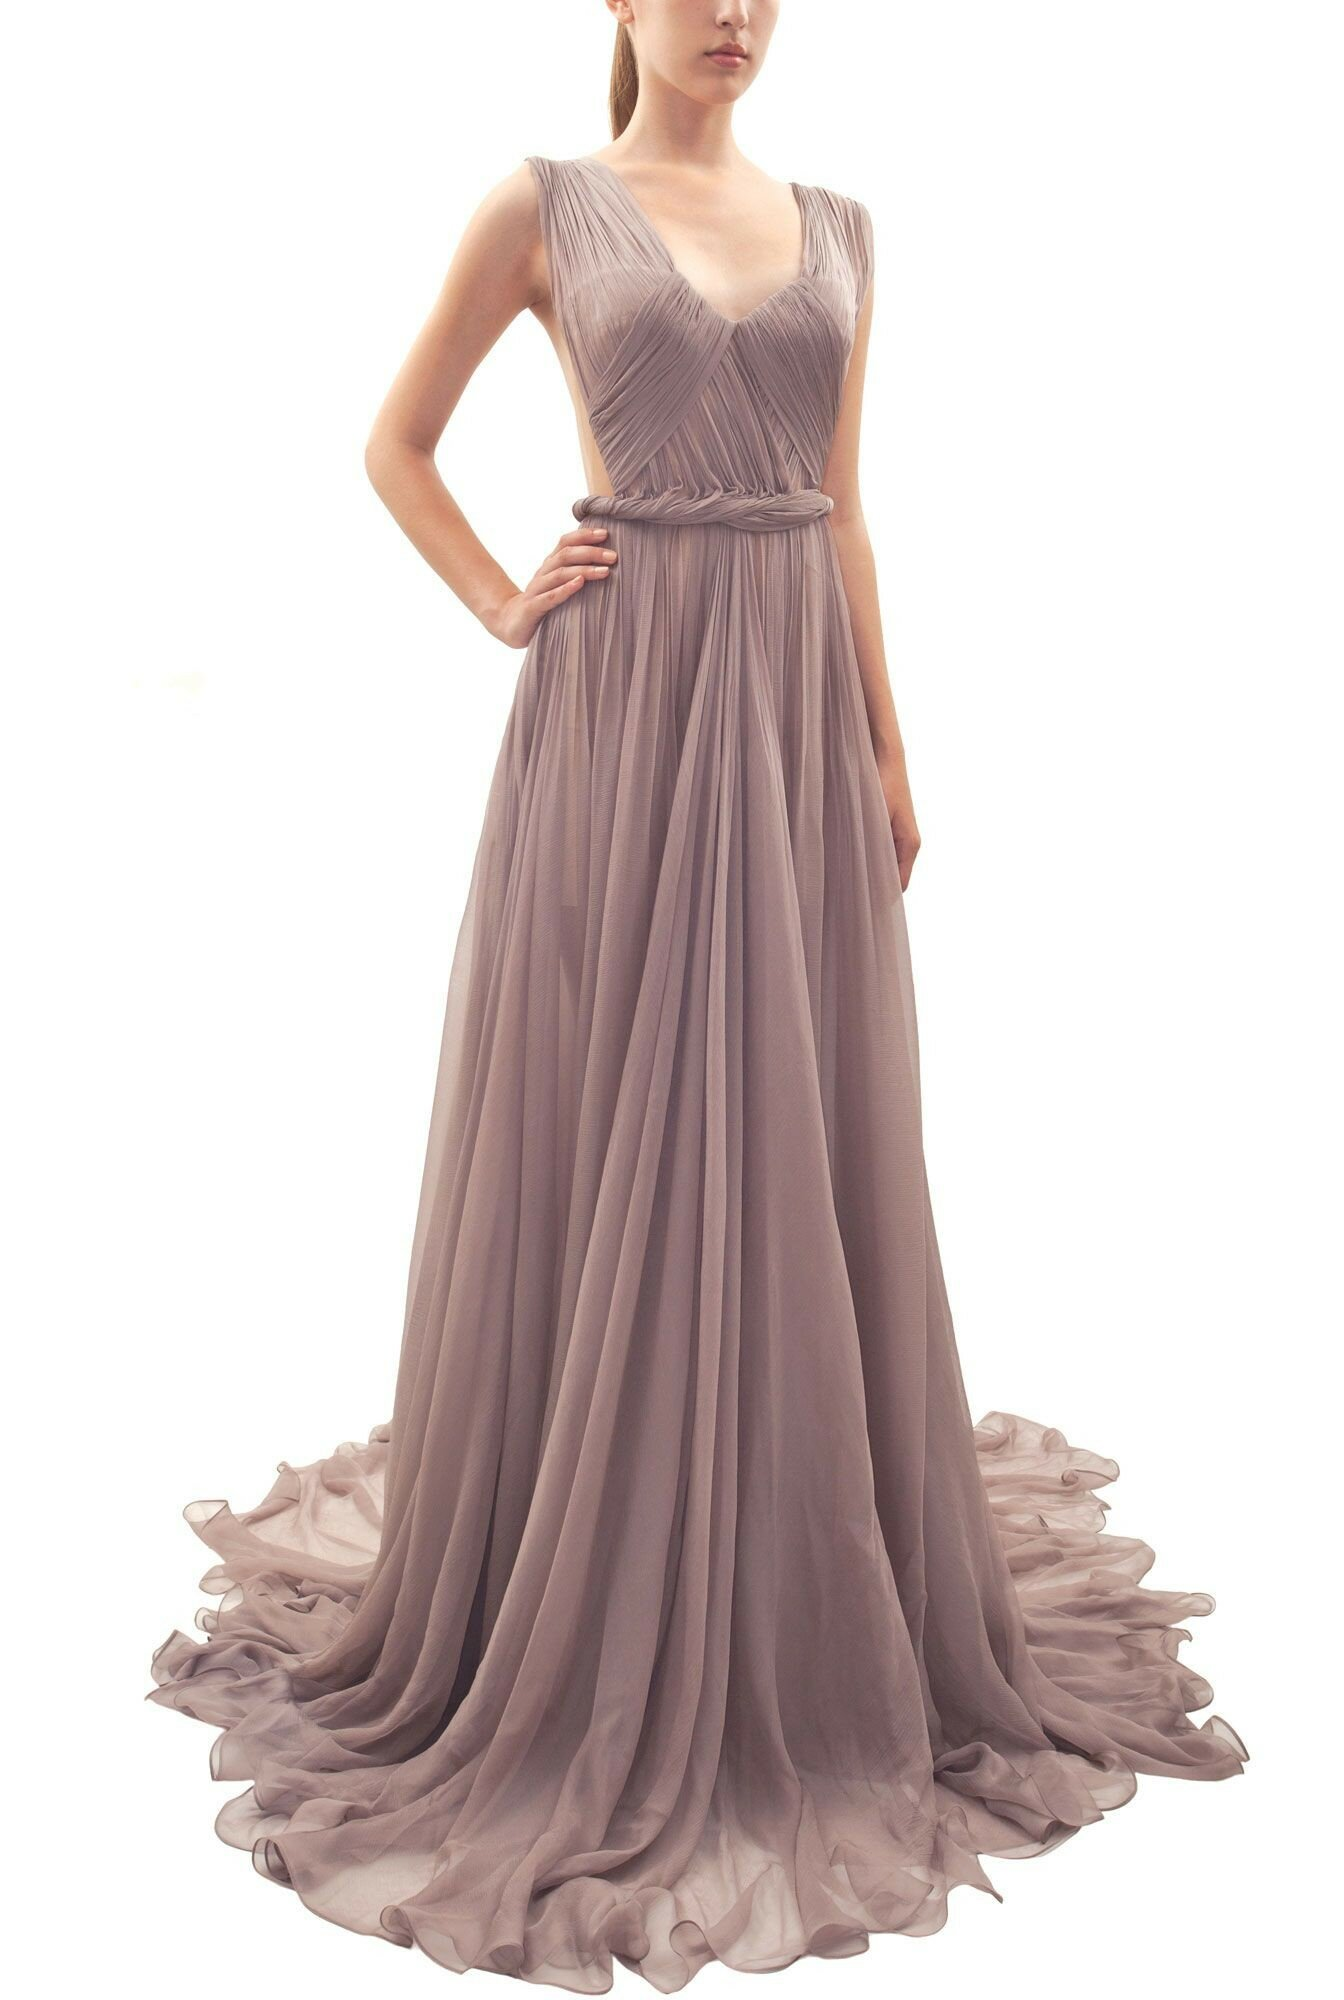 Long evening dresses for wedding Photo - 7